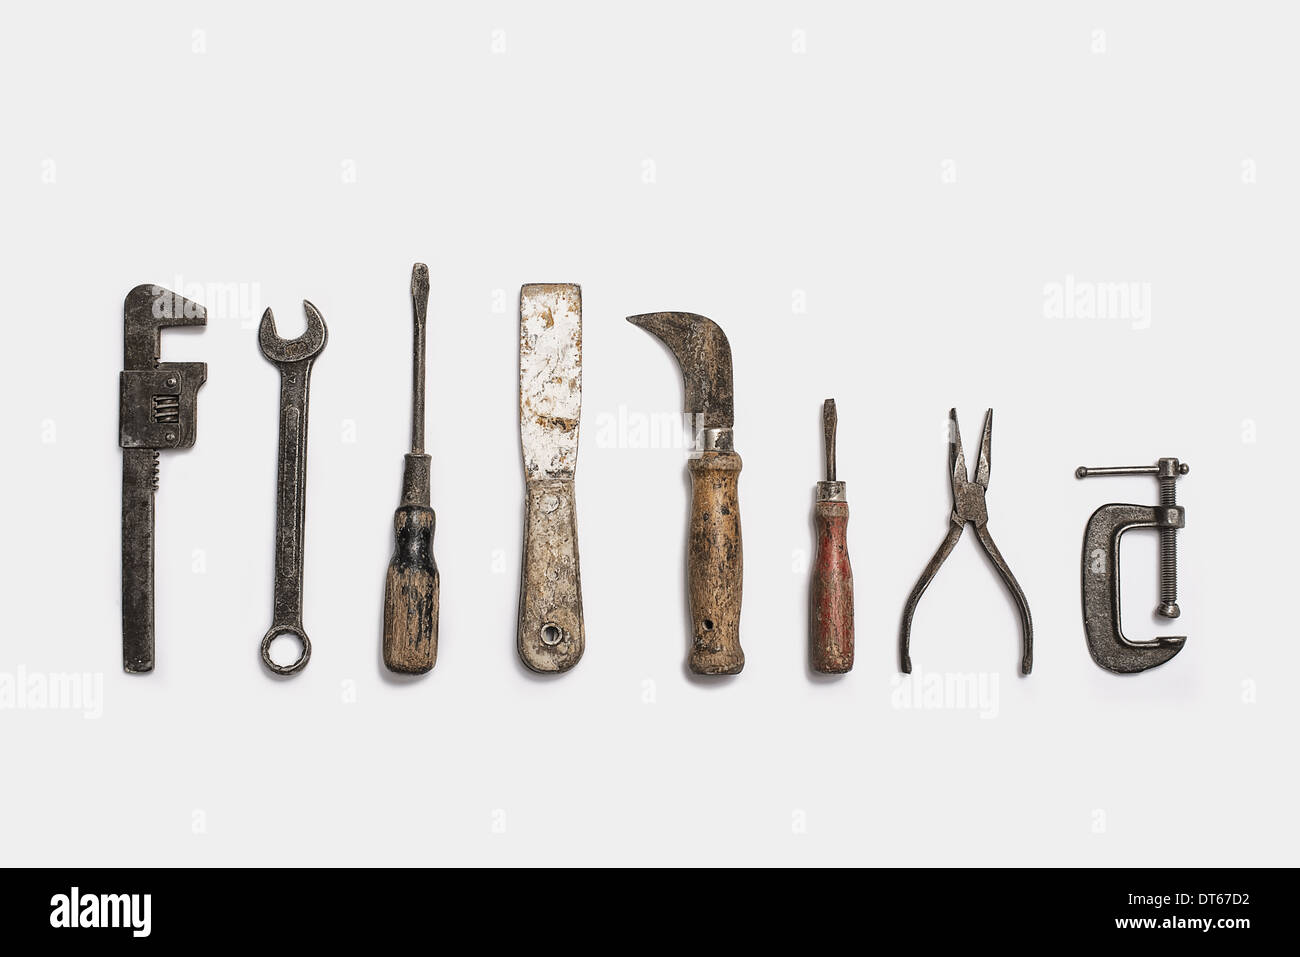 Used tools arranged in a row. Well used, worn handles, shaped wooden smooth texture. Metal rusty and marked implements. - Stock Image